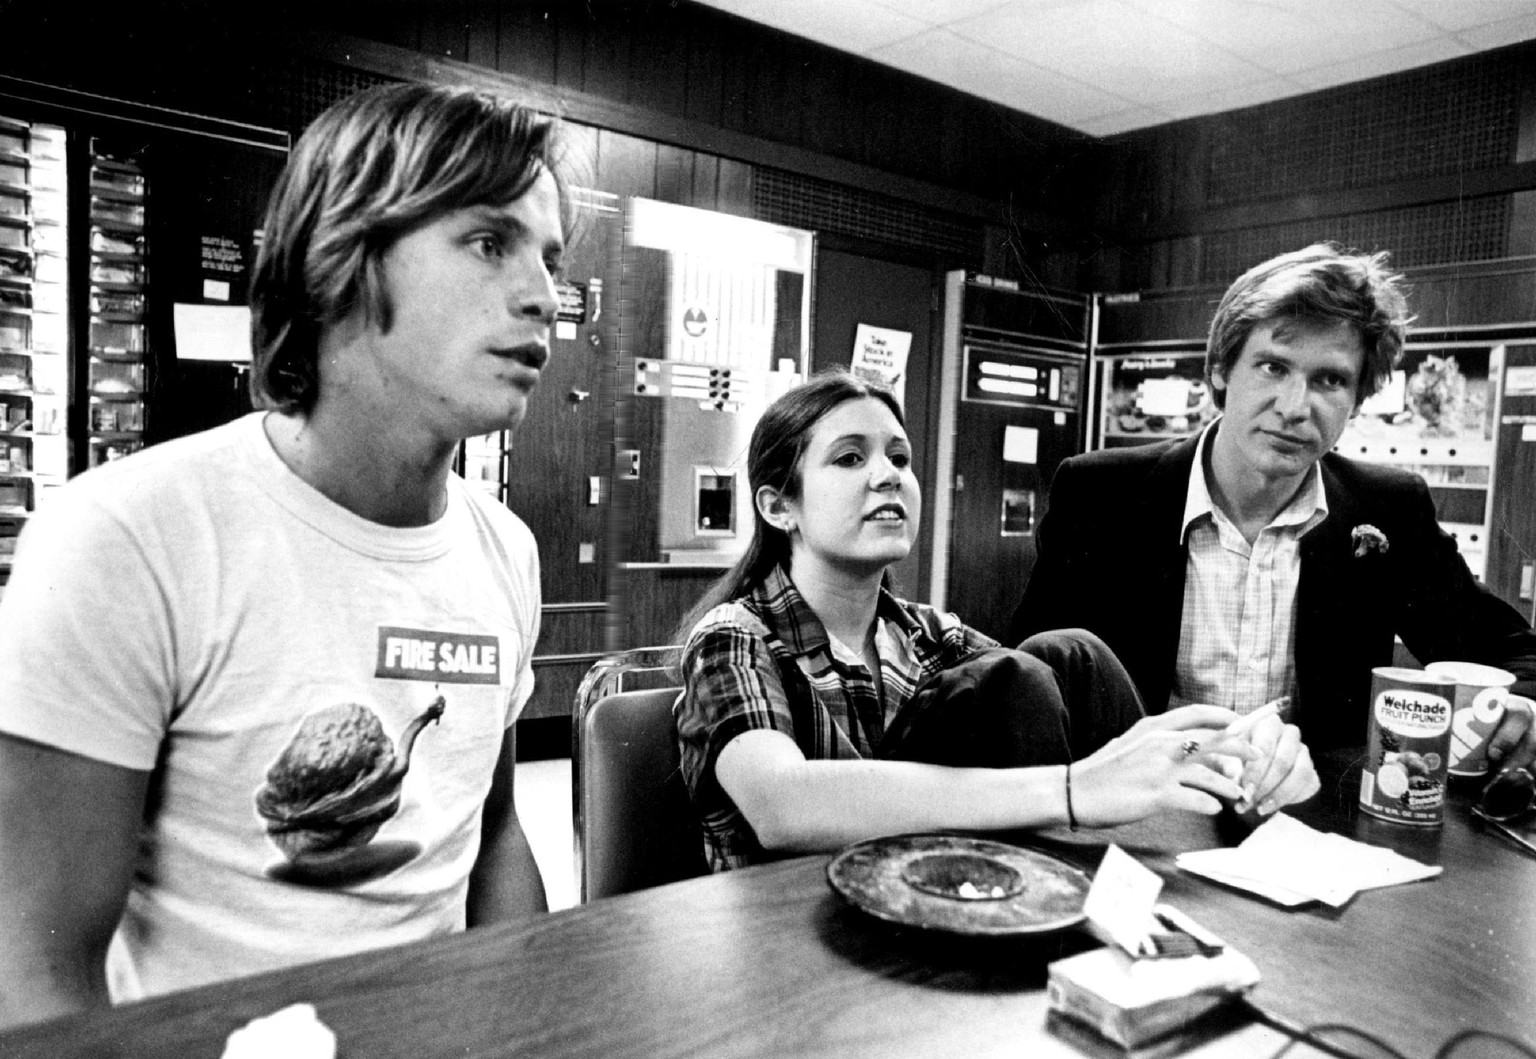 JUN 15 1977, MAY 30 1978, JUN 4 1978; 'Star Wars' has Given three Performers that 'All-Important Break'; Featured in the popular science fantasy movie are, from left, Mark Hamill, Carrie Fisher and Harrison Ford.;  (Photo By Steve Larson/The Denver Post via Getty Images)